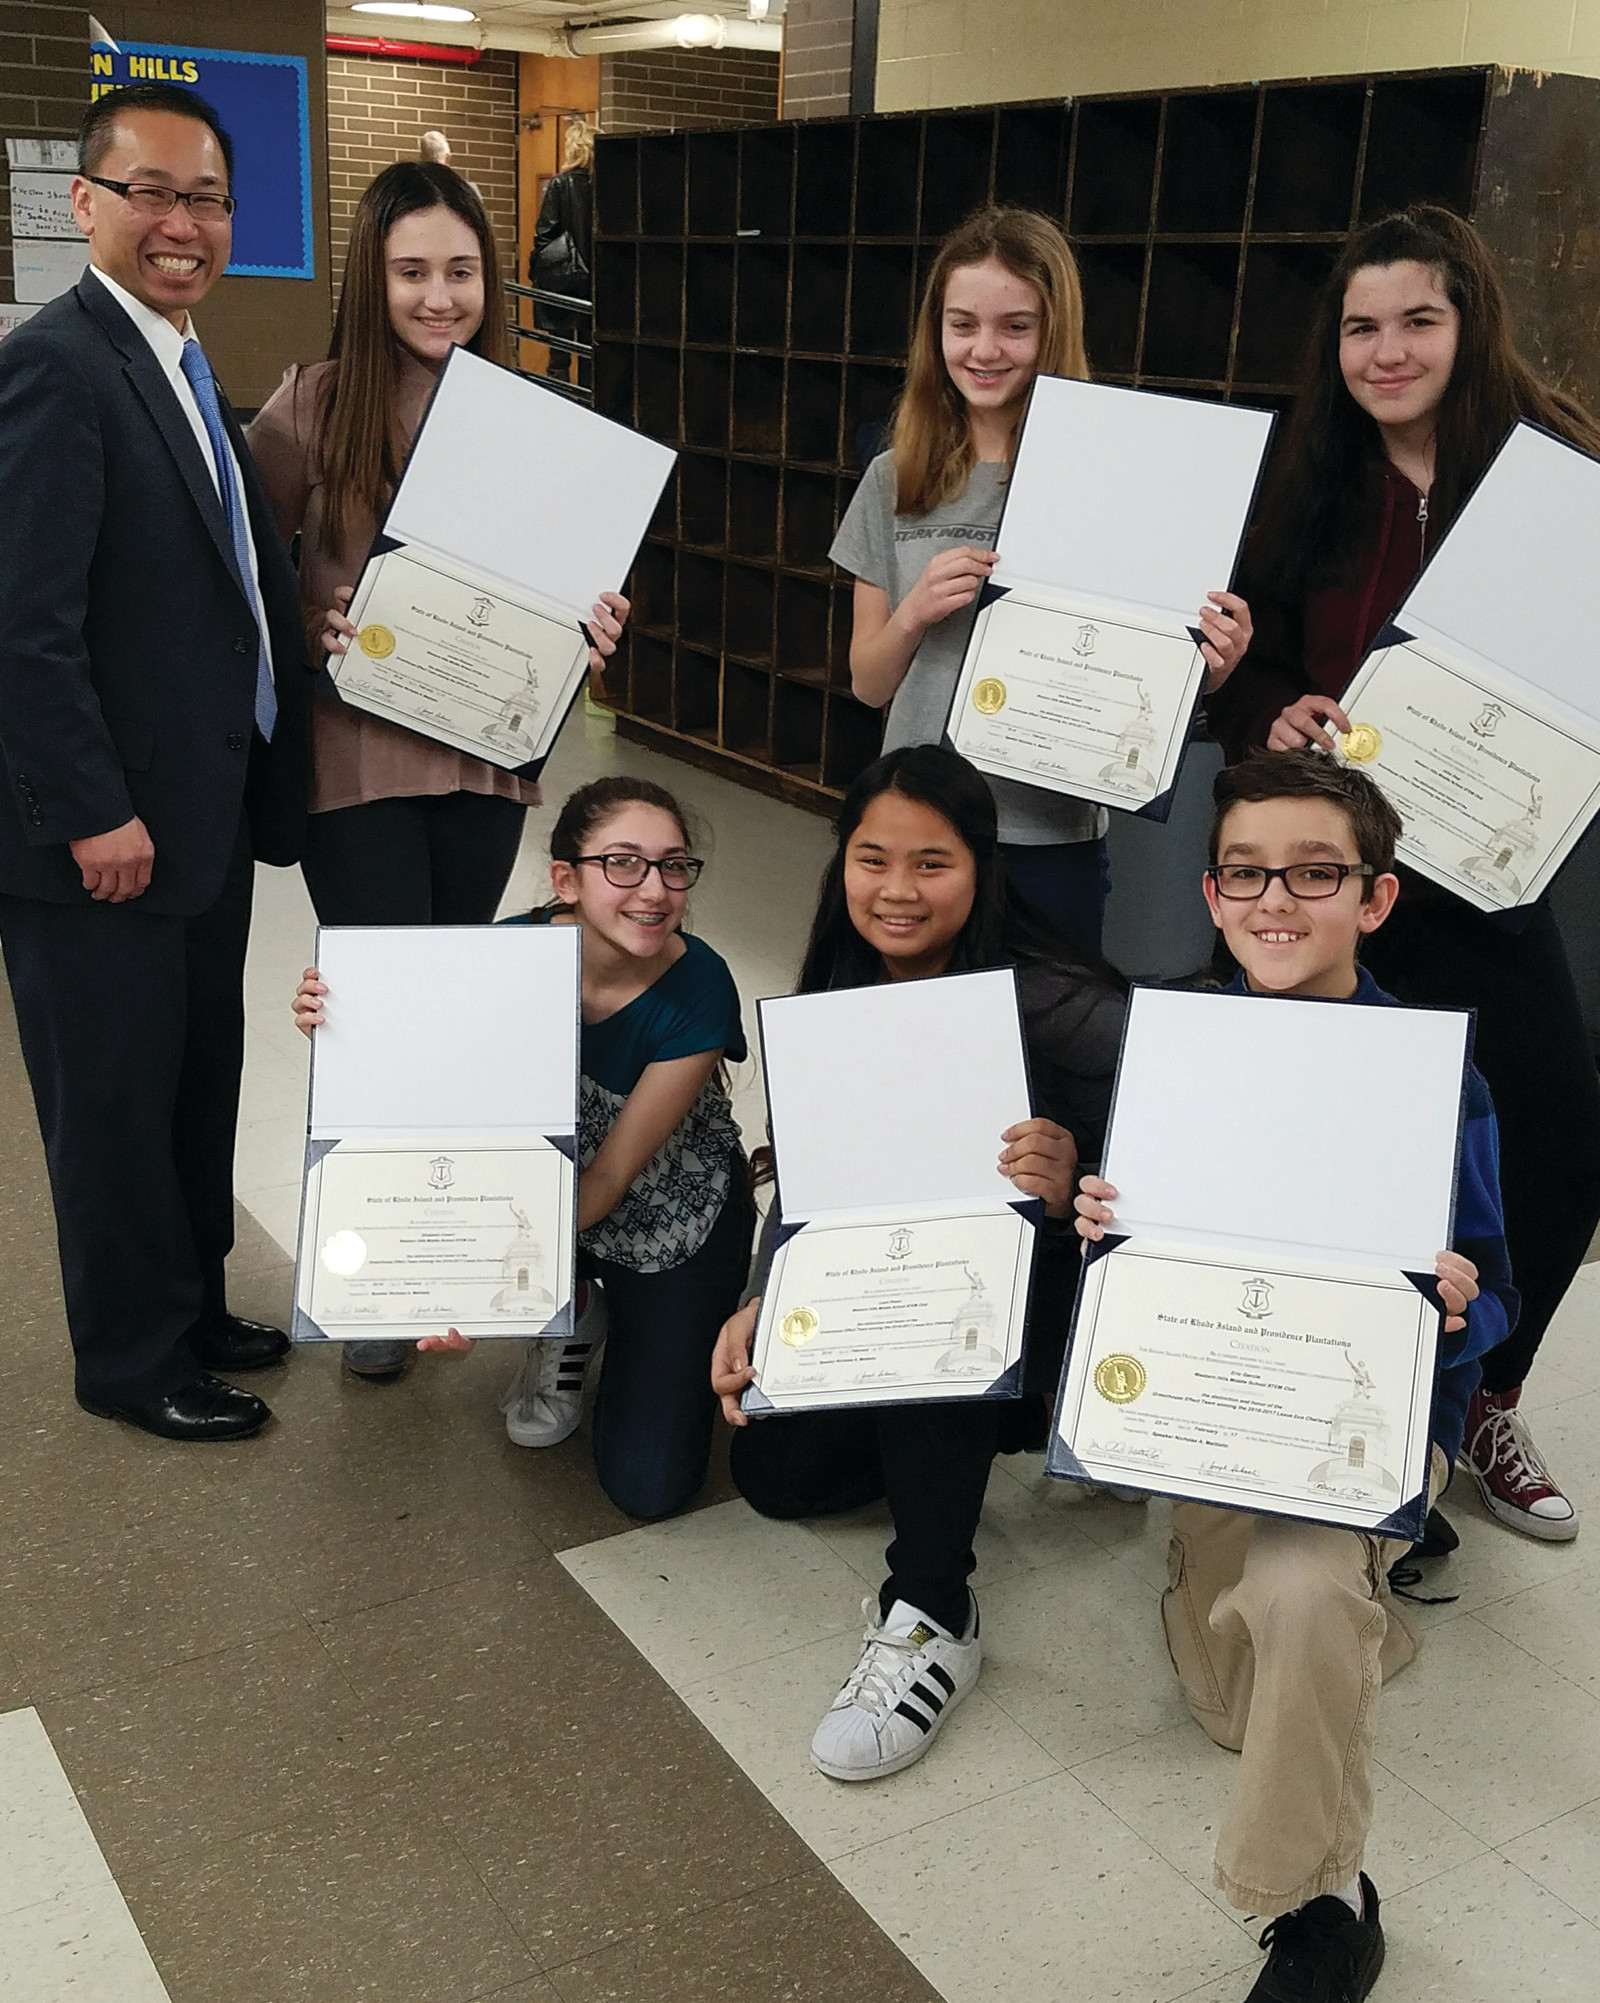 HONORED: The Lexus Eco Challenge winners were given special citations from the State House during the awards ceremony and are seen here posing with Cranston's Mayor Allan W.  Fung.